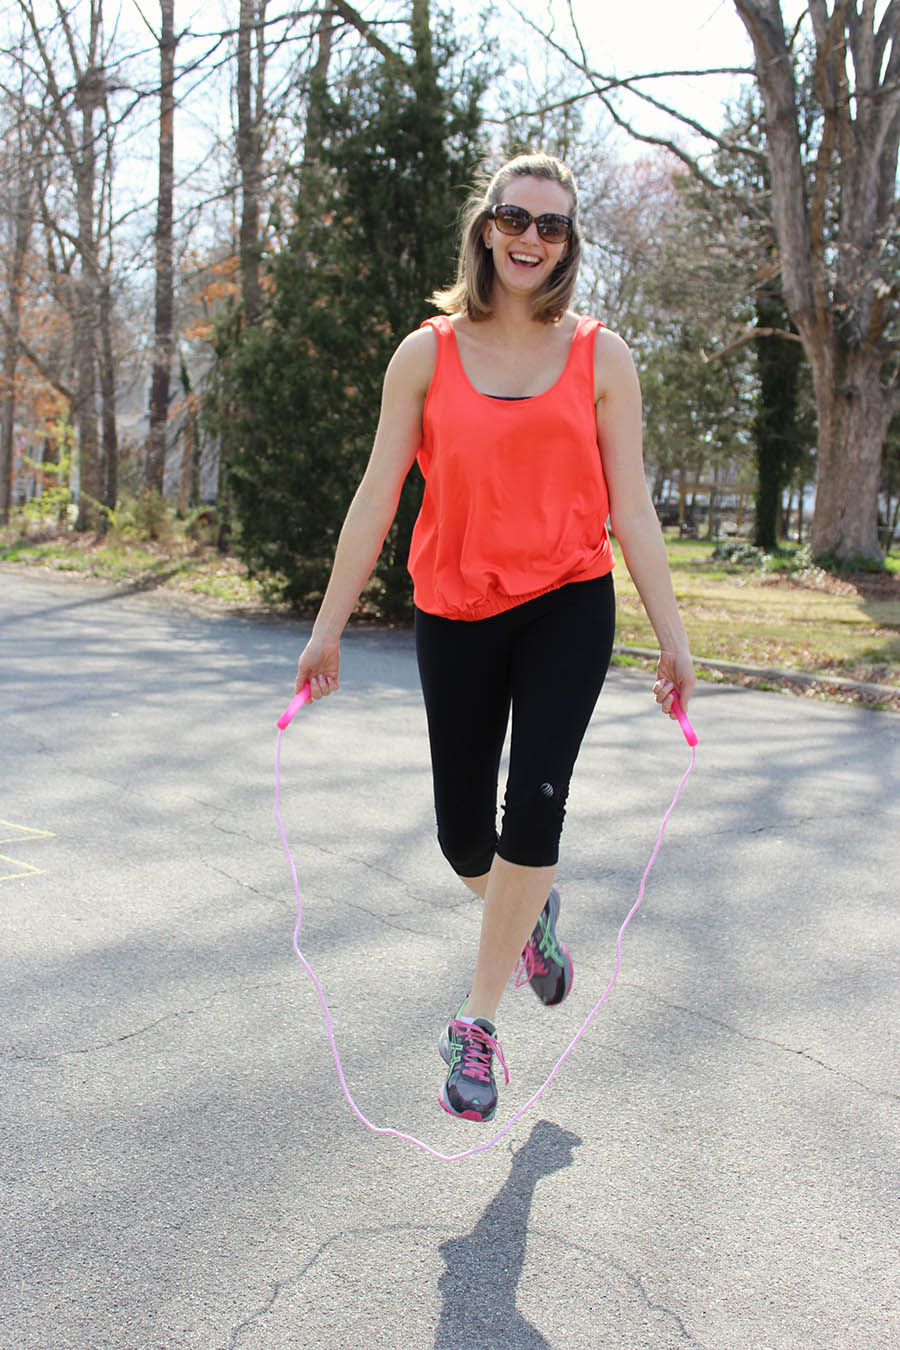 Jump Rope for a fun workout